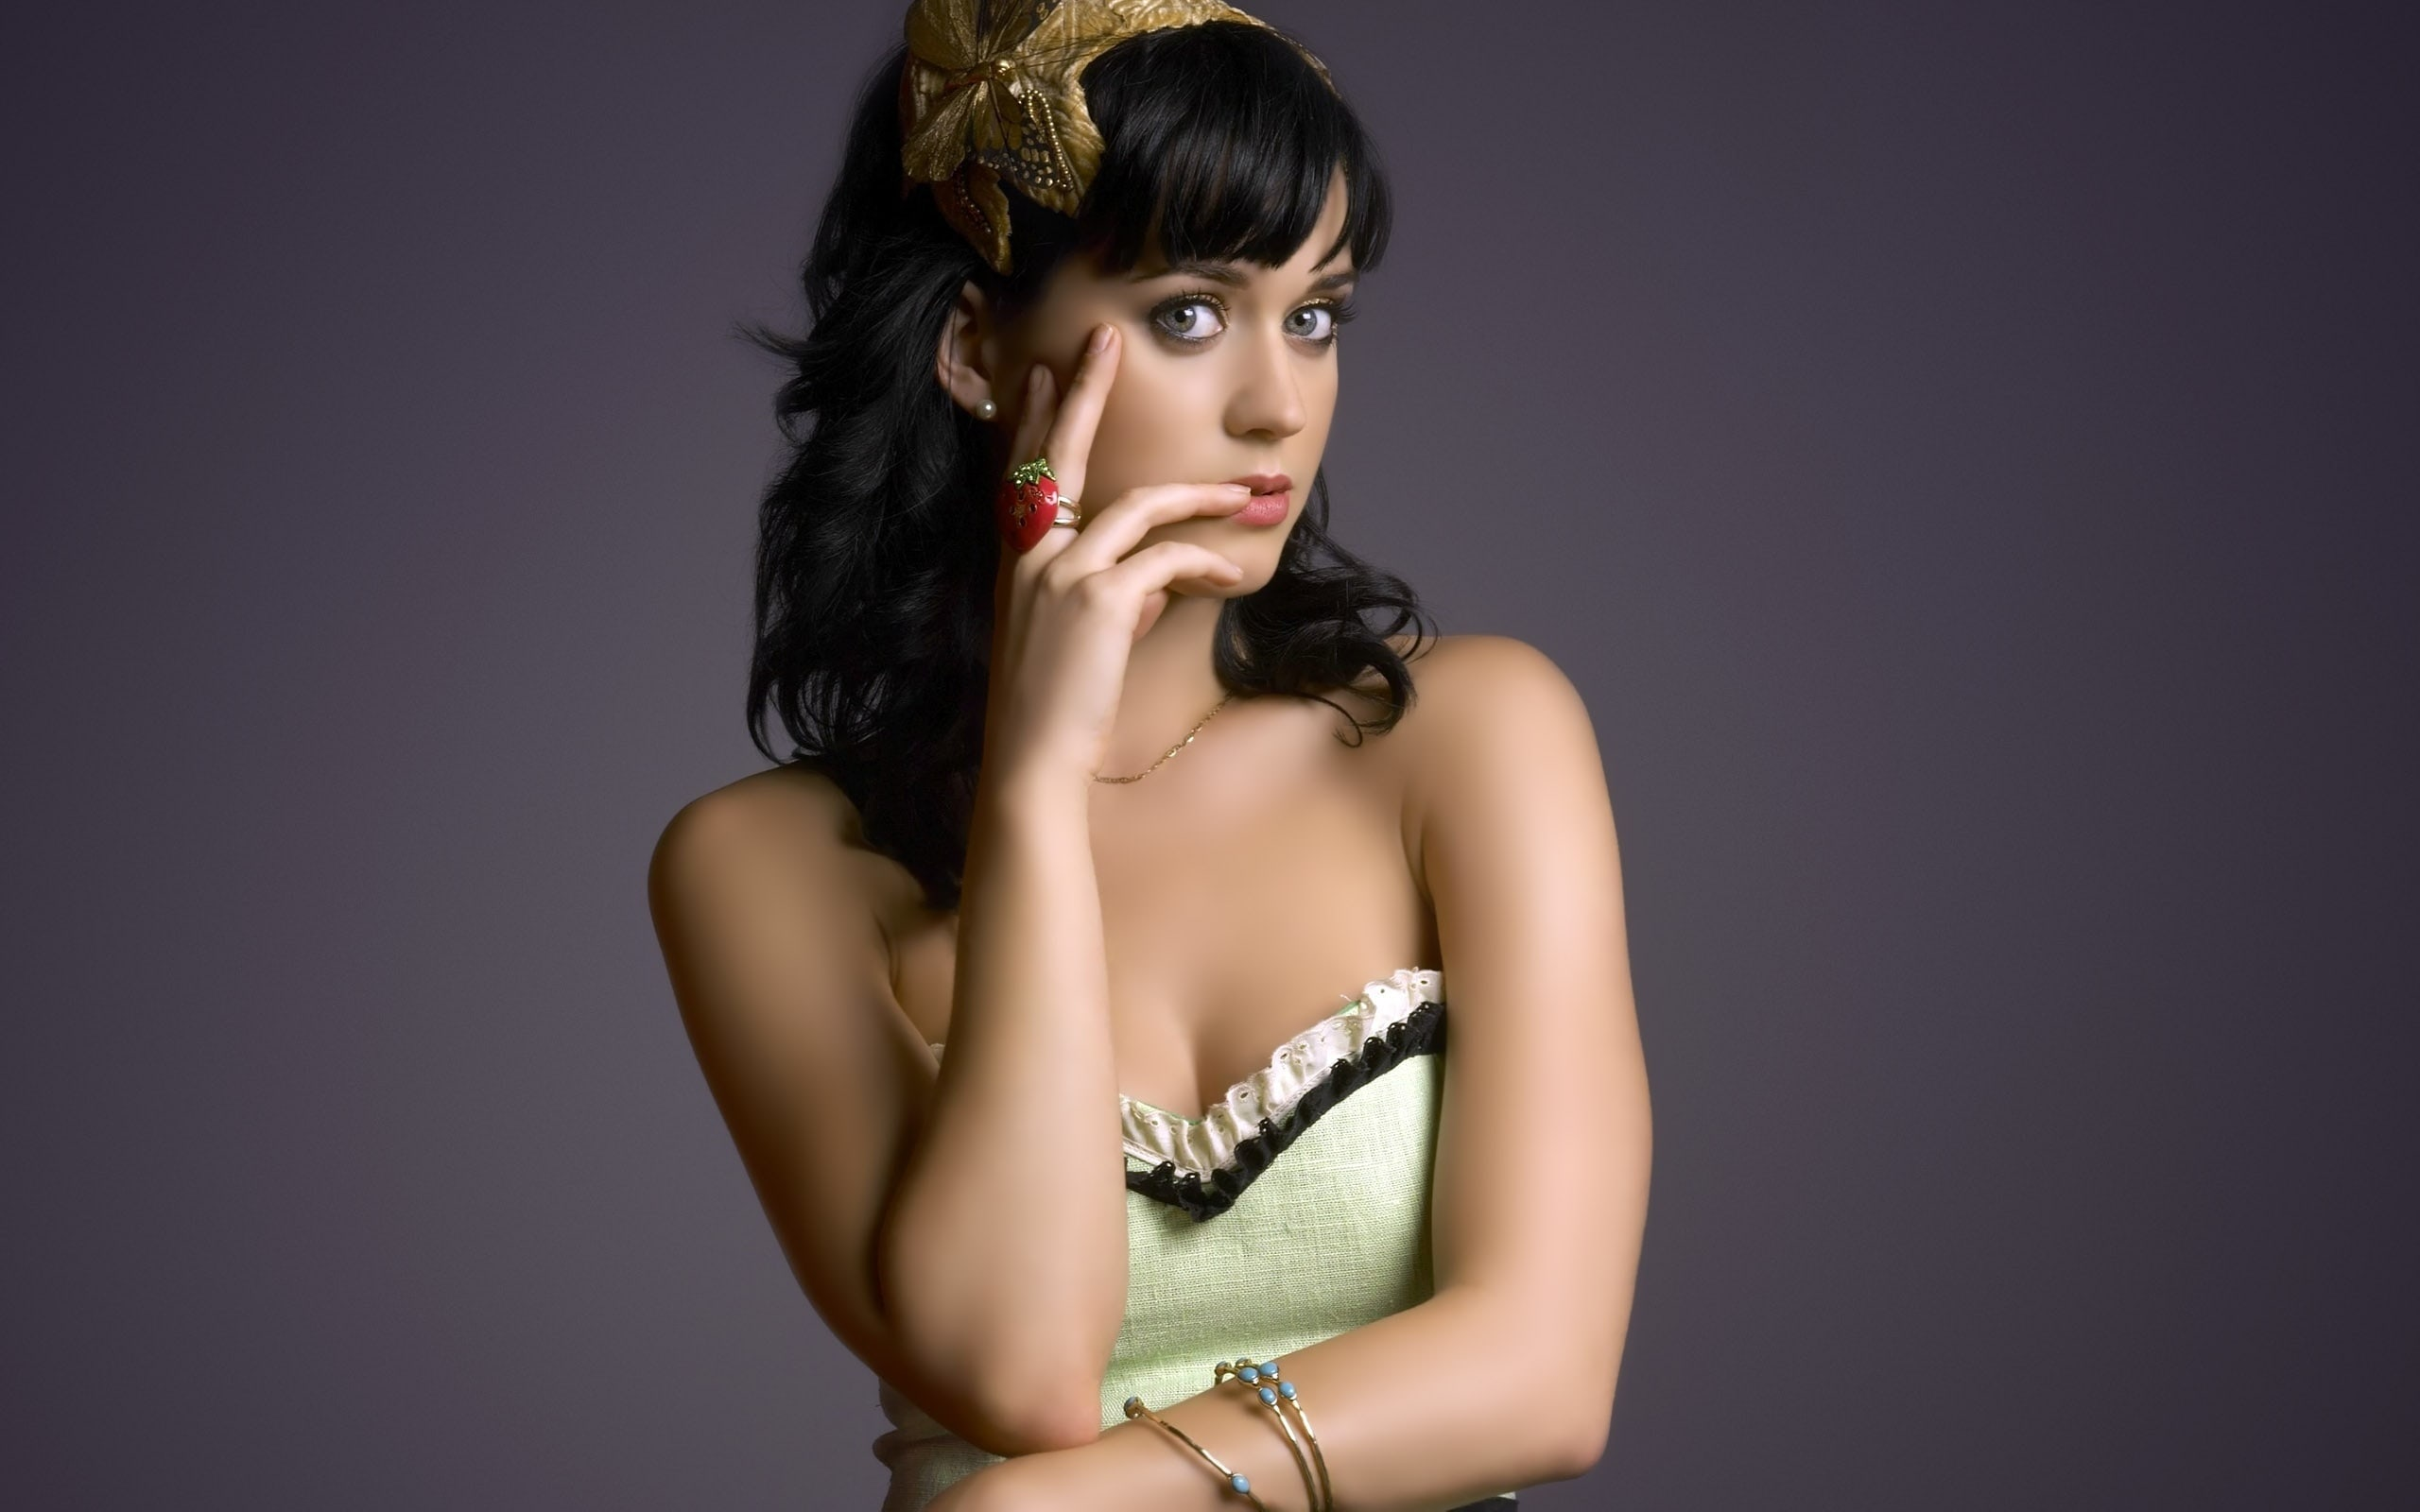 Katy Perry for mobile